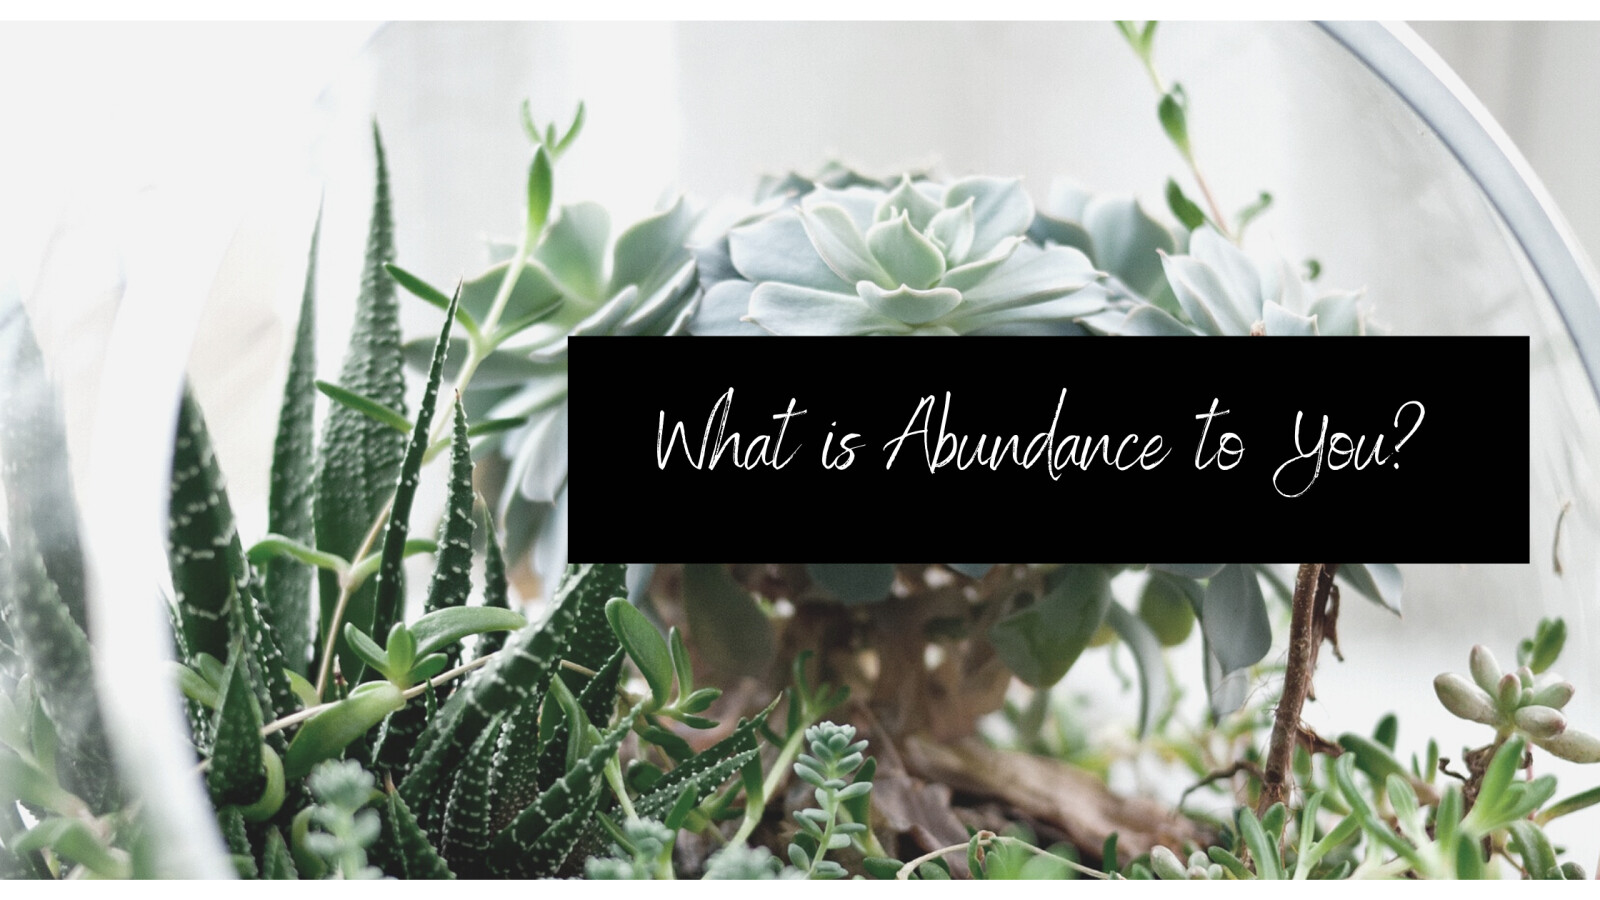 What is Abundance to You?